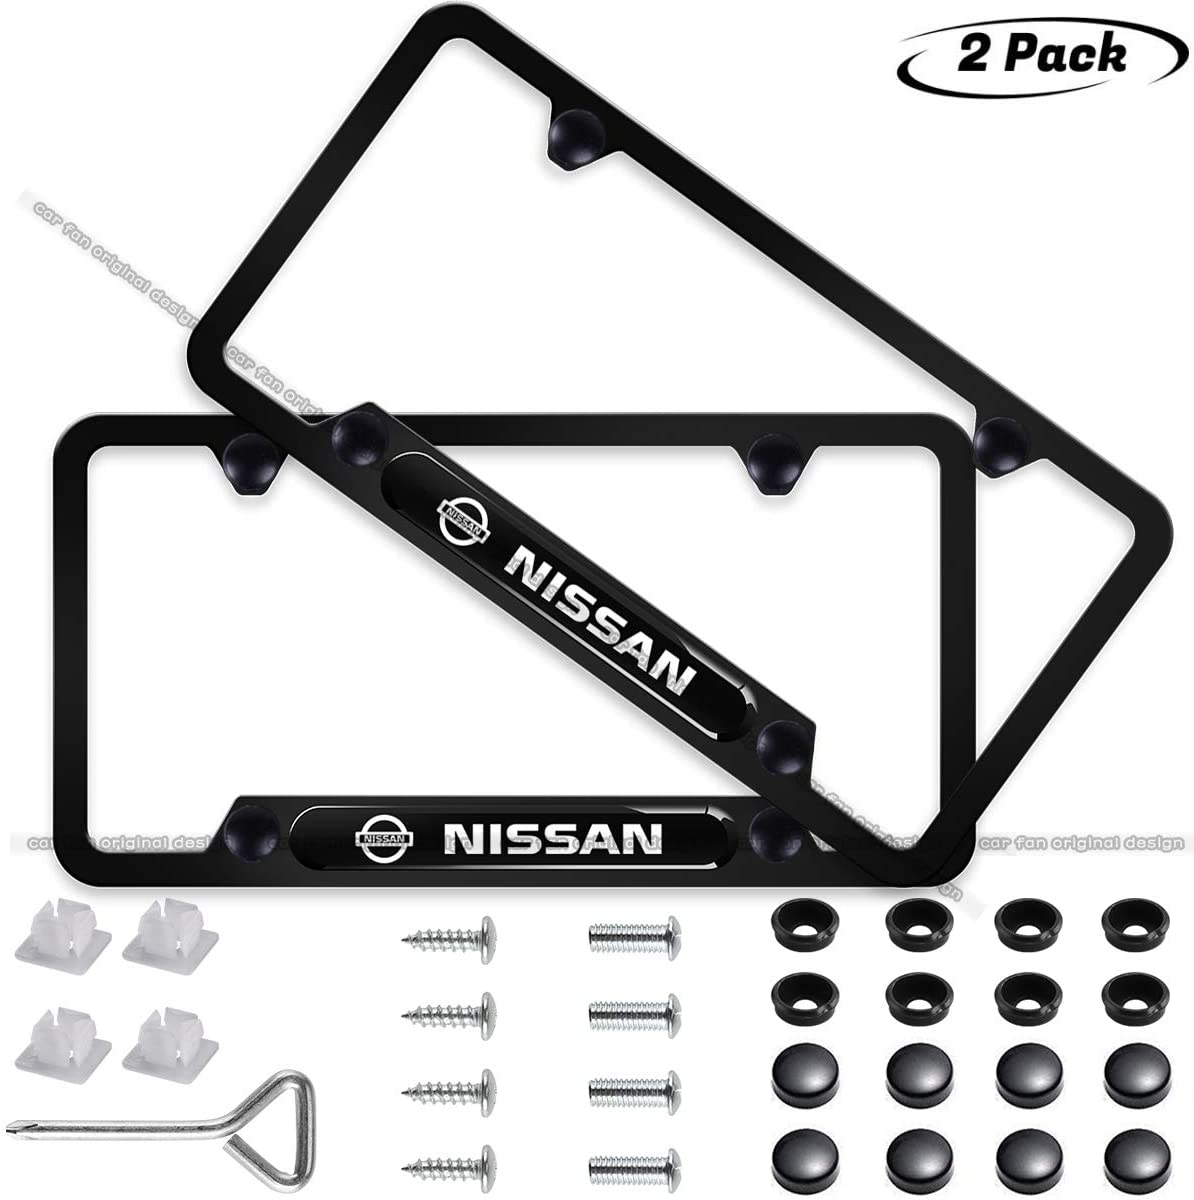 CAR FAN 2-Pieces Black License Plate Frame for Nissan,Silent Tough,Better Decoration of Your License Plate Frame (fit Nissan)